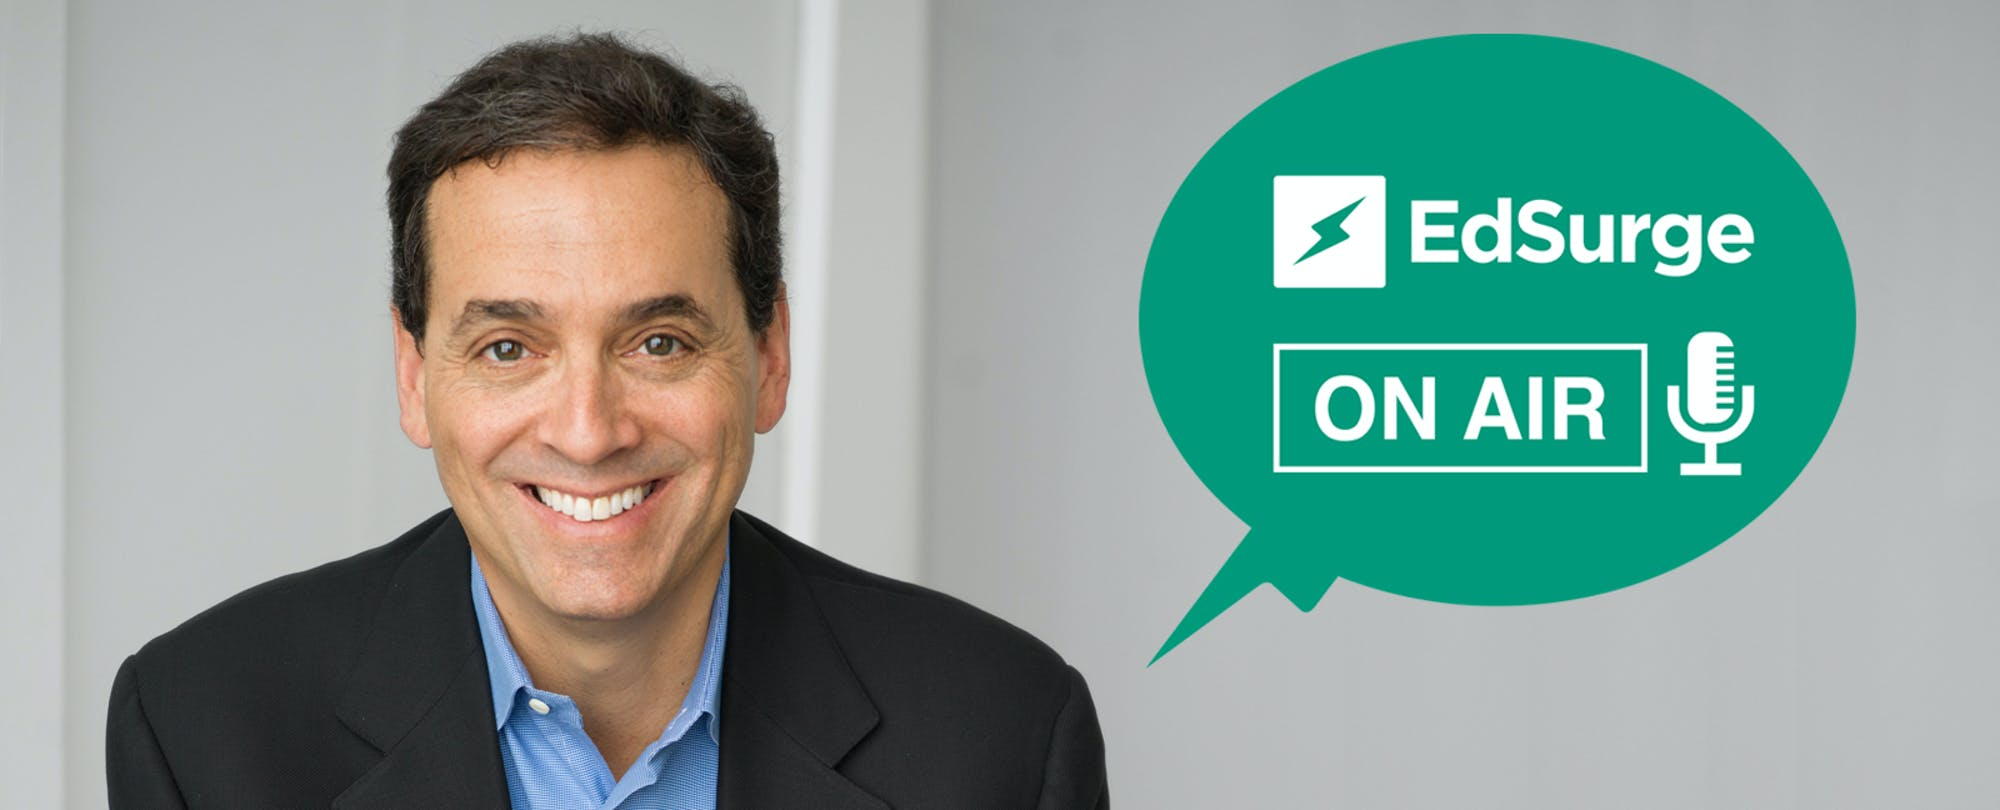 'When' Does Learning Happen Best? Dan Pink on the Science Behind Timing and Education